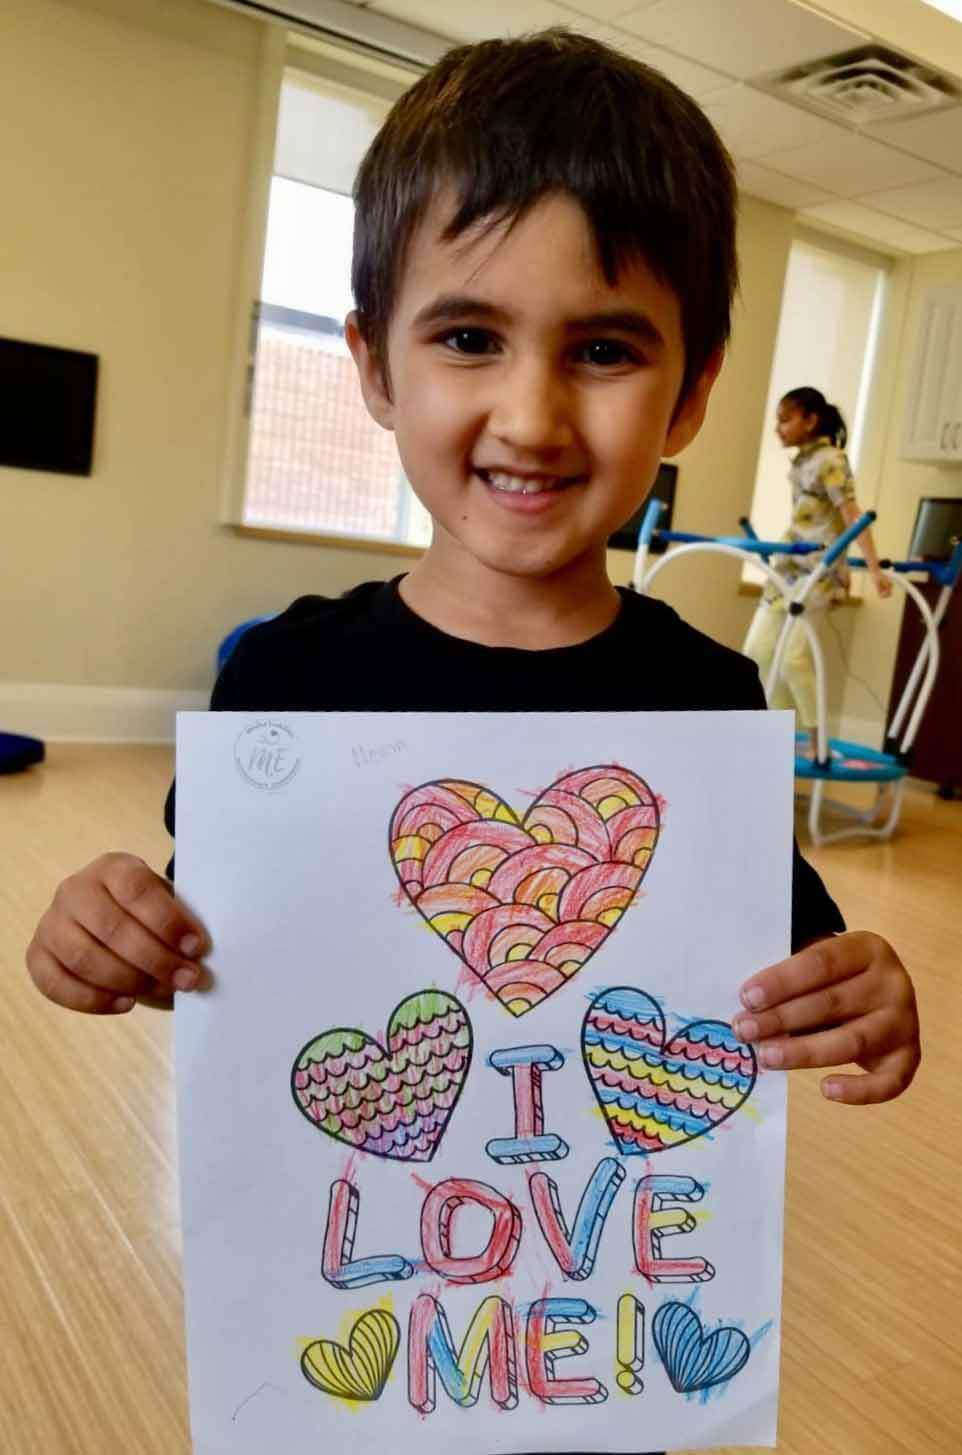 Young participant shows off his artwork in Milton Ontario's The Kangaroo Project